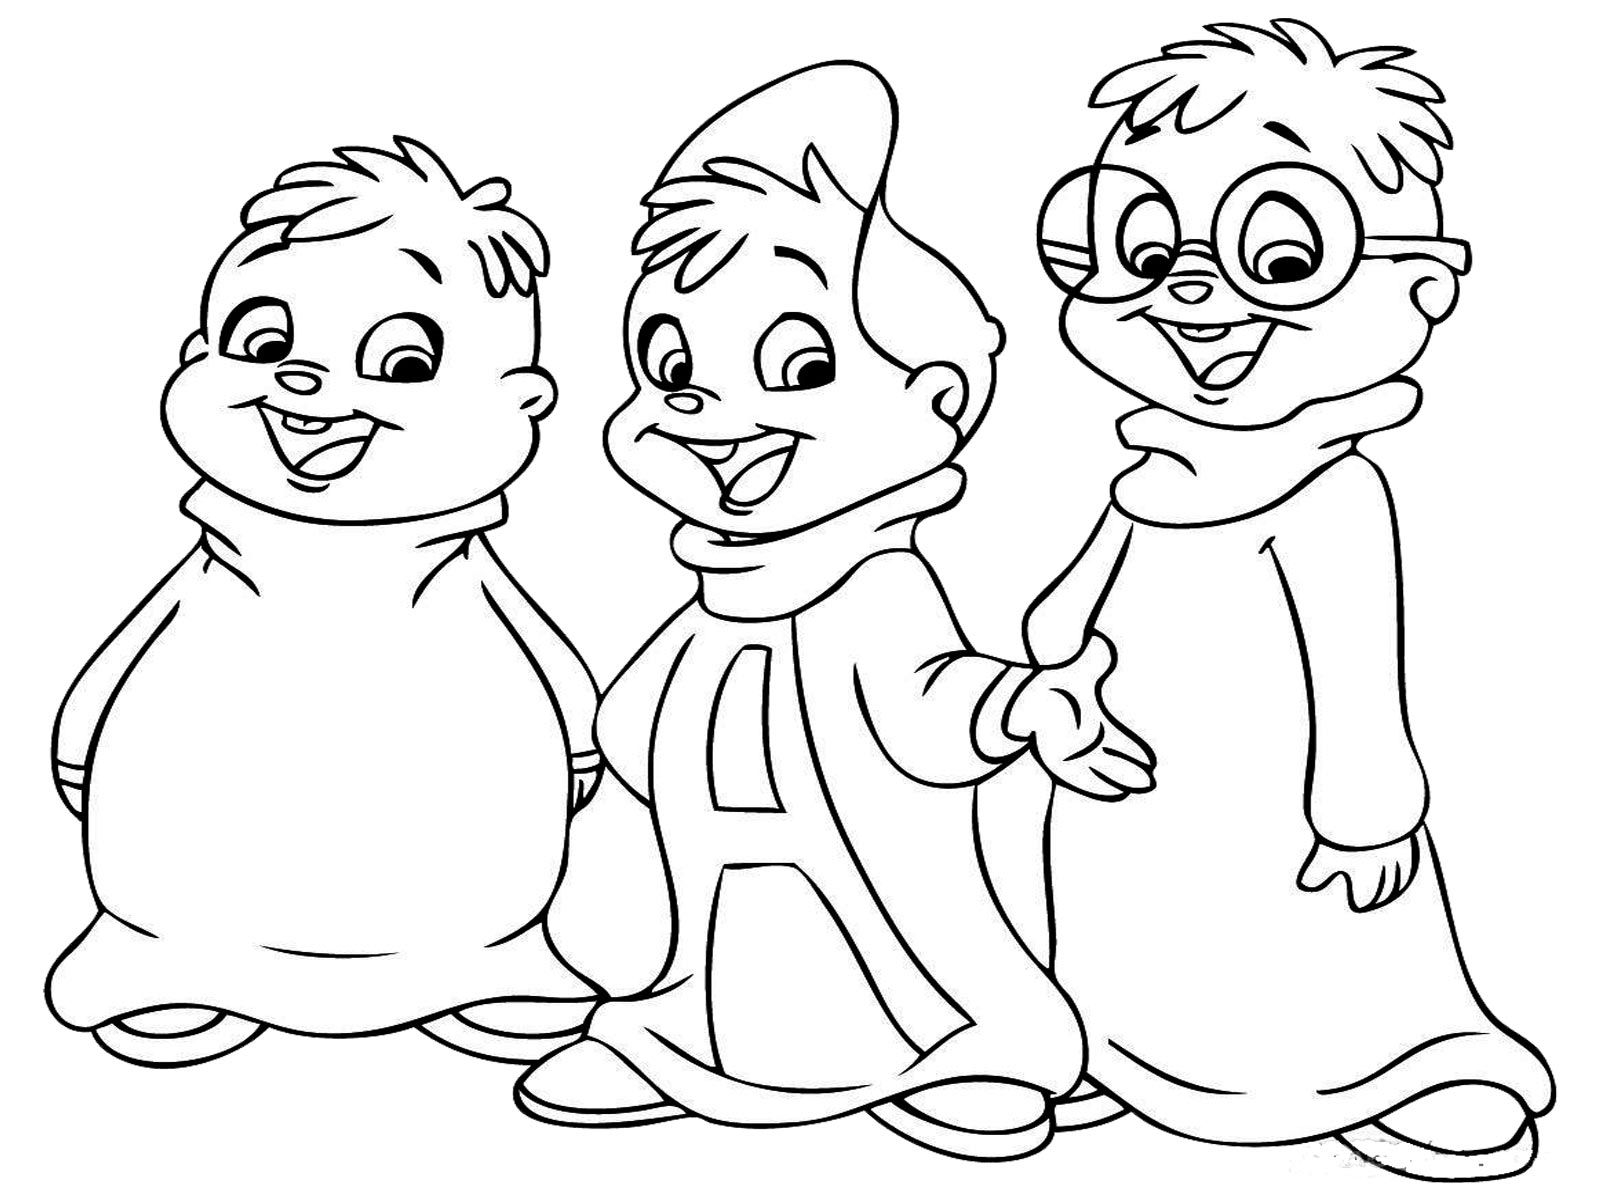 Here is a collection of some of the best Alvin and the chipmunks ...